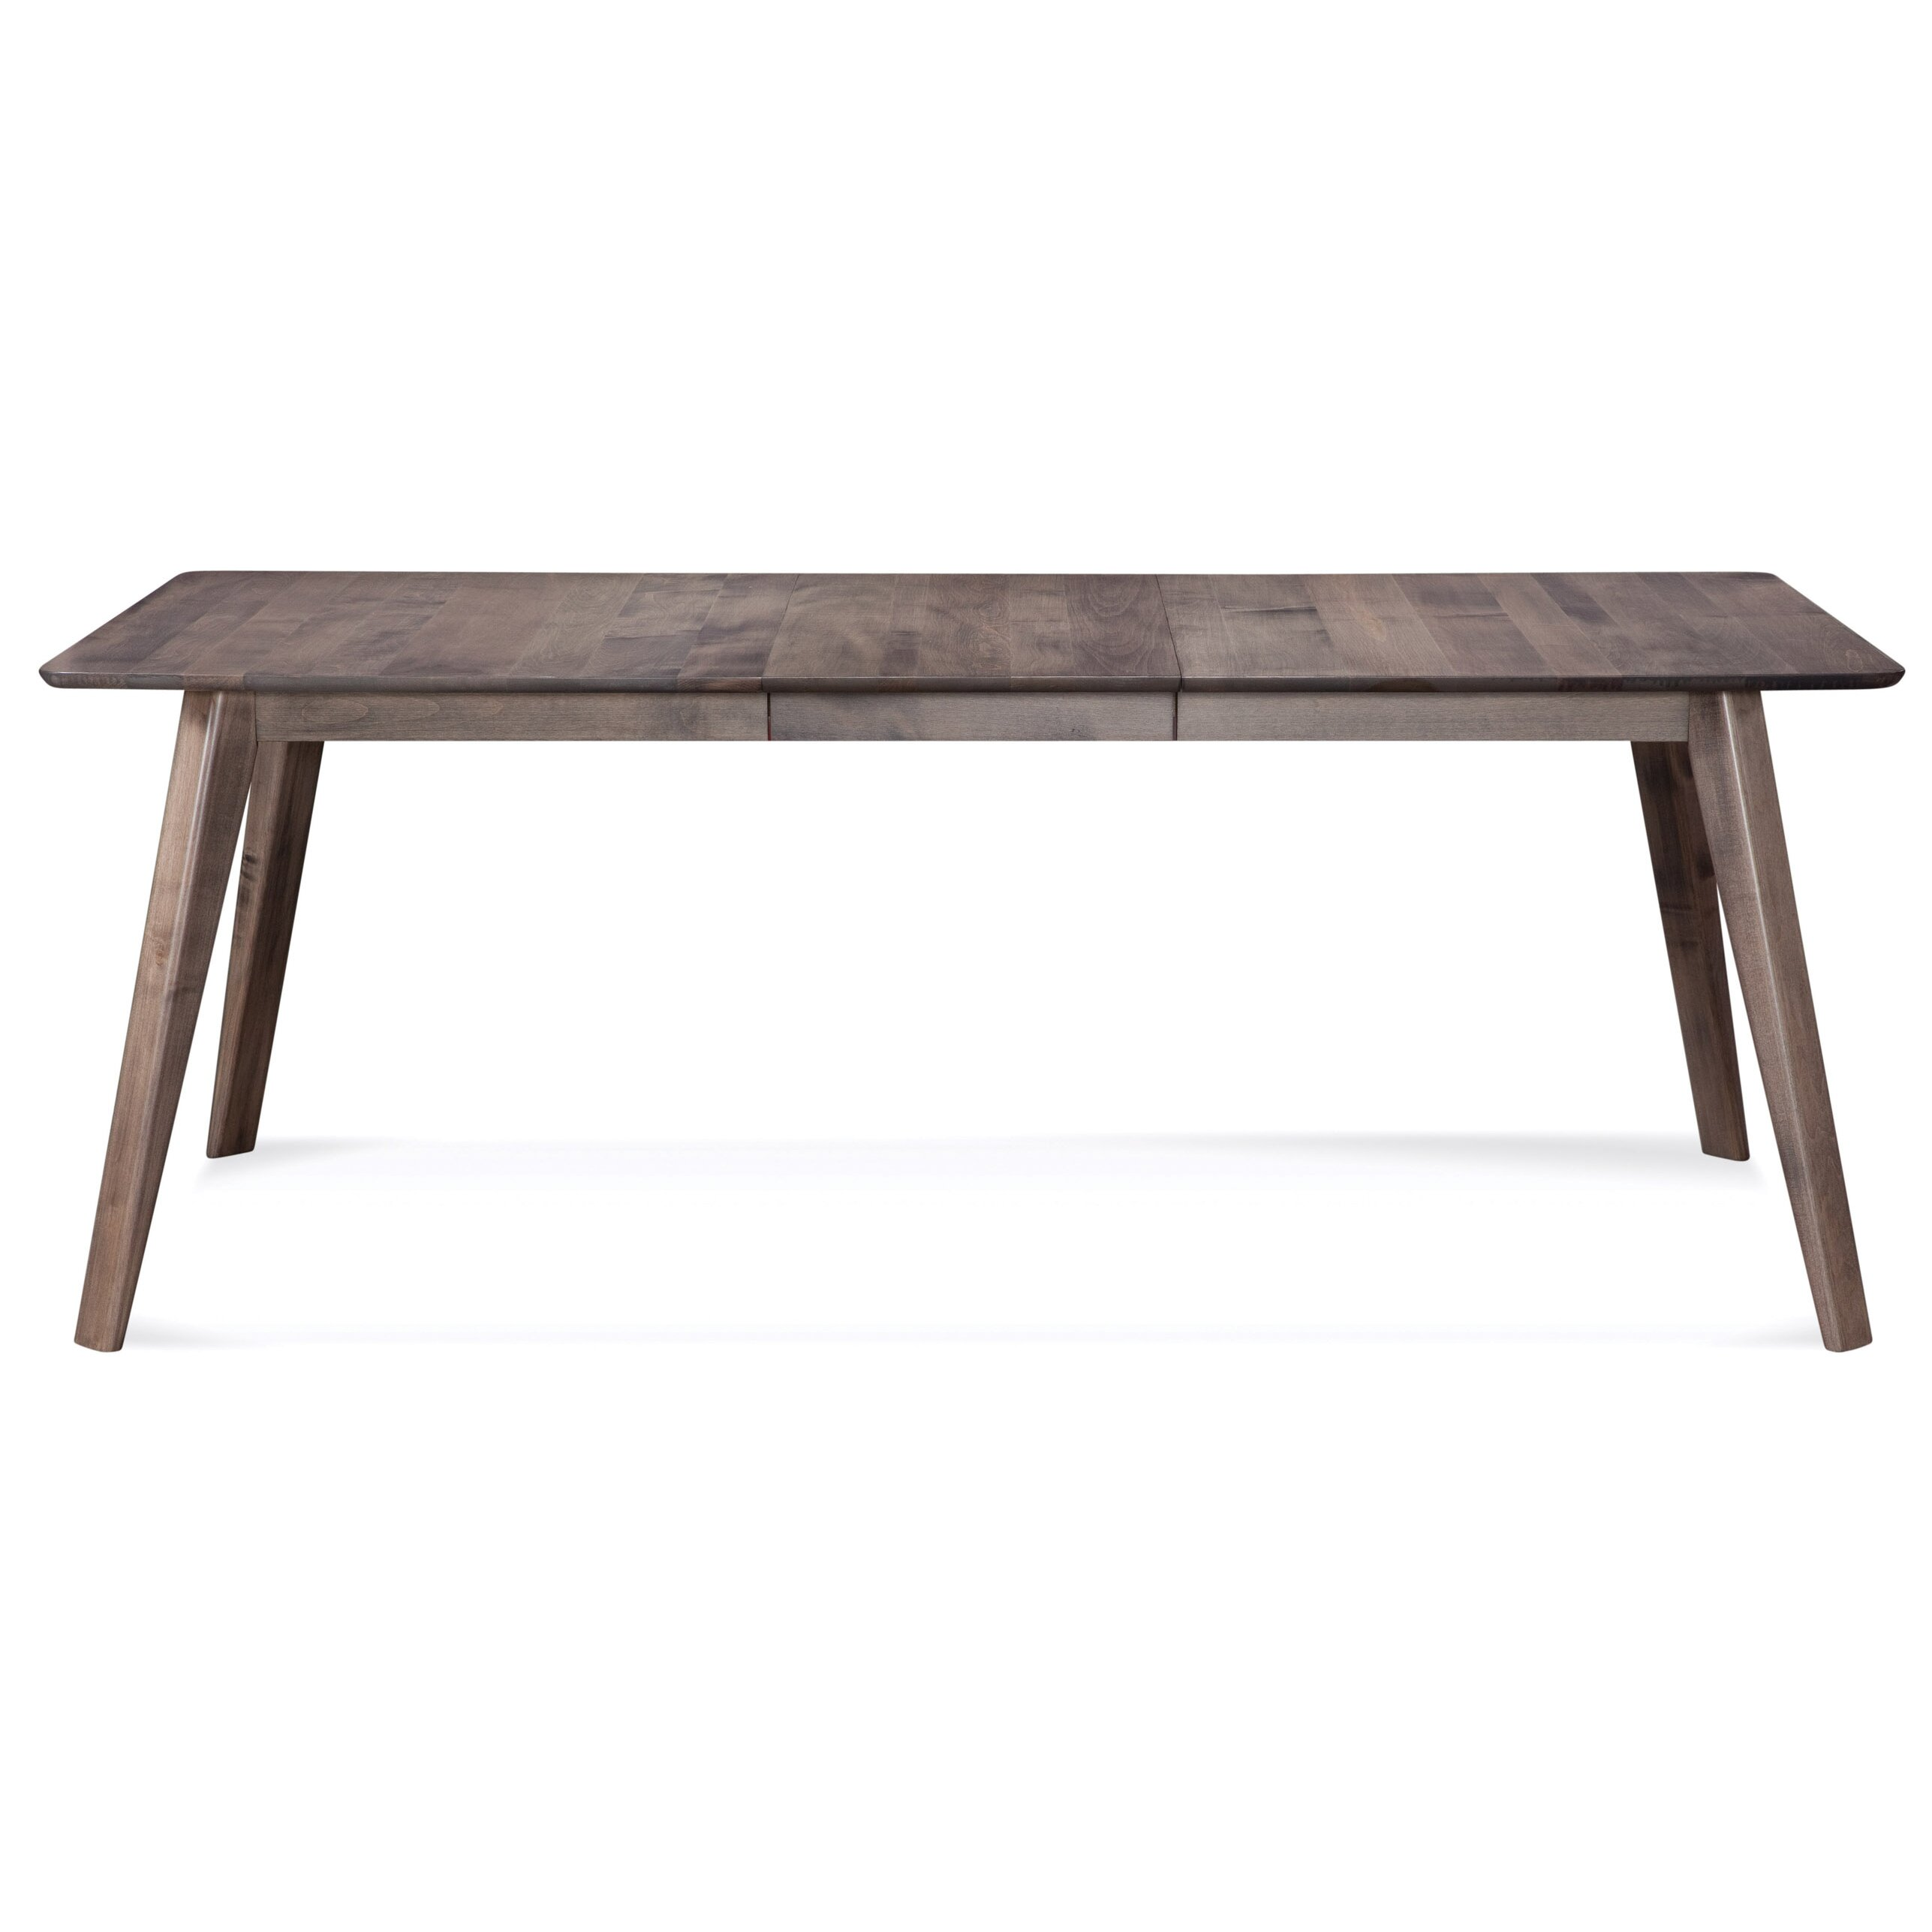 Saloom furniture alton dining table for Wayfair dining table